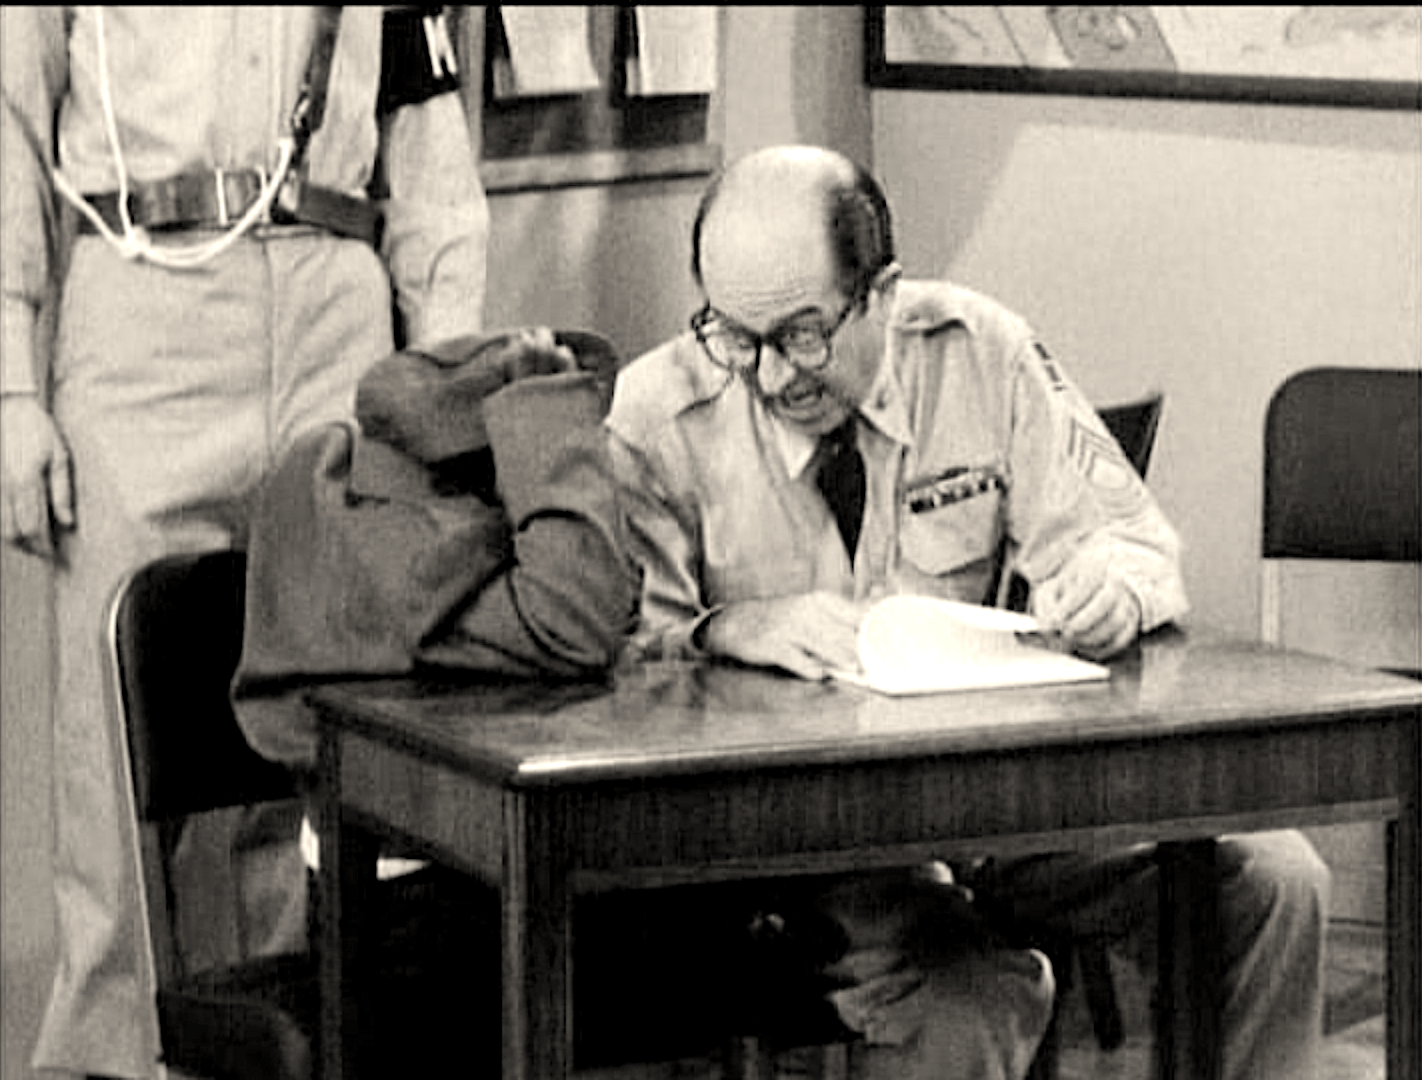 The Phil Silvers Show : SE 01 Ep 17 : The Investigation